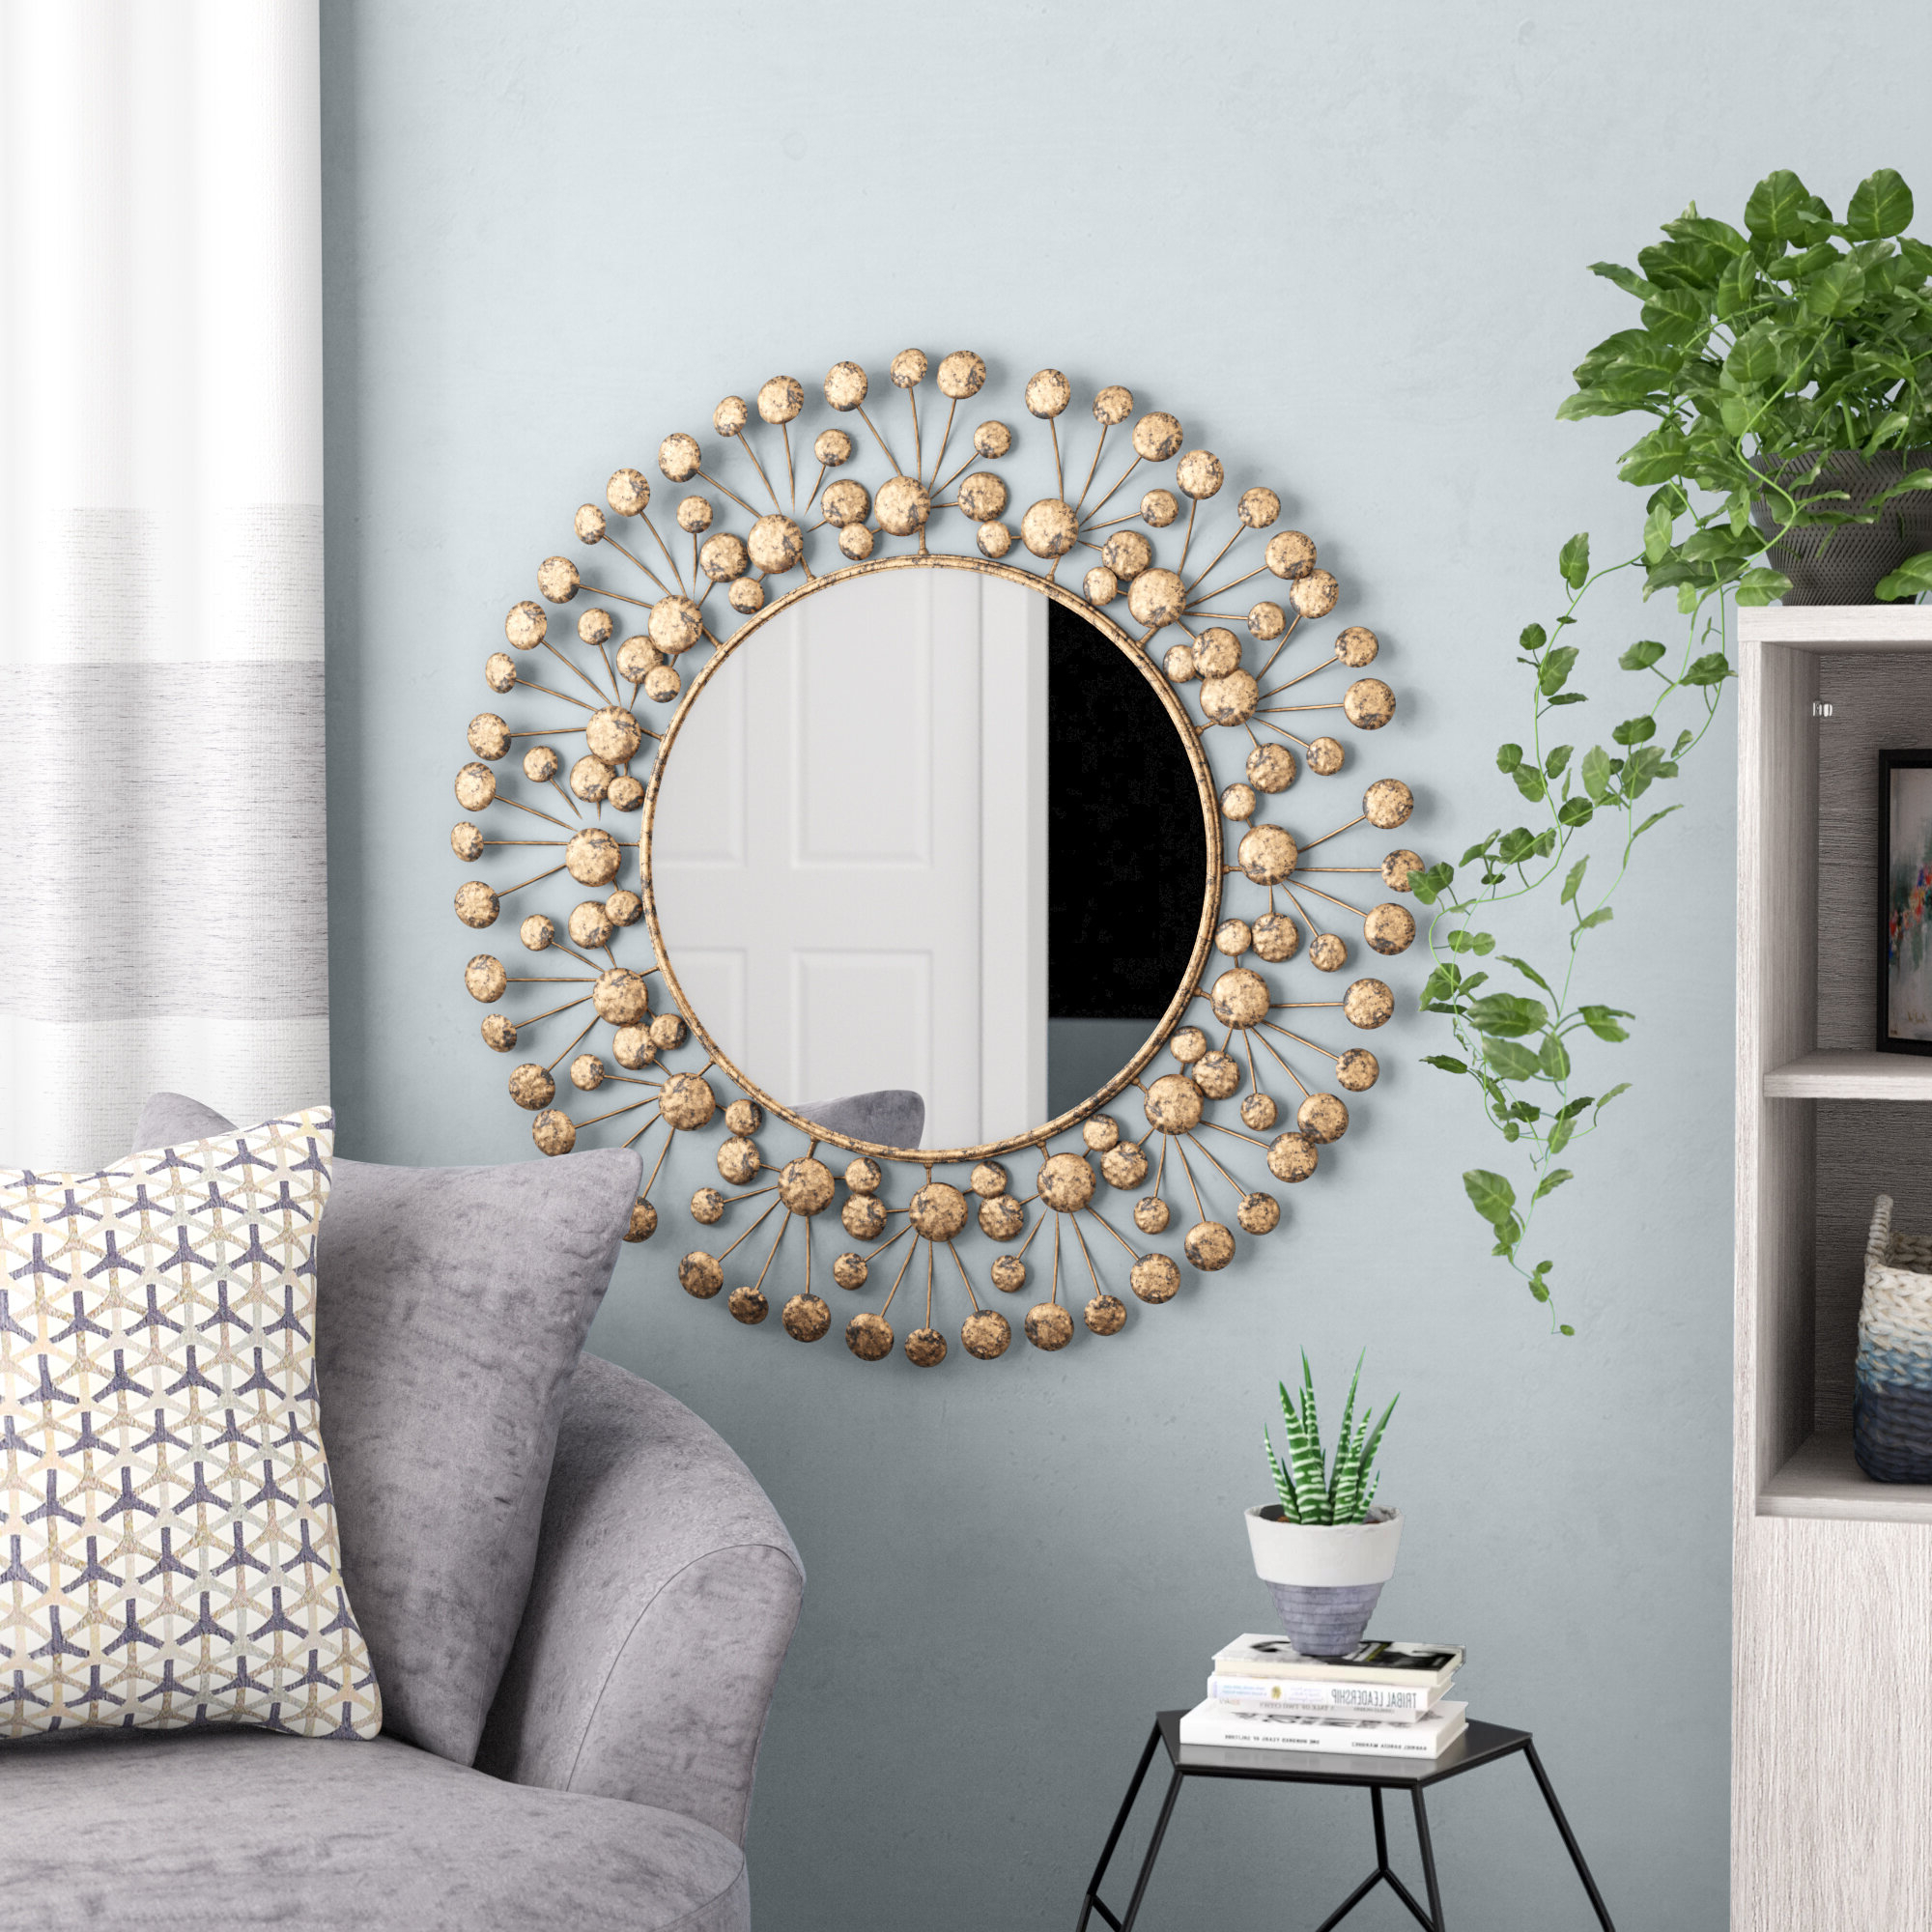 Most Popular Eisenbarth Oversized Decorative Round Wall Mirror With Regard To Decorative Round Wall Mirrors (Gallery 1 of 20)